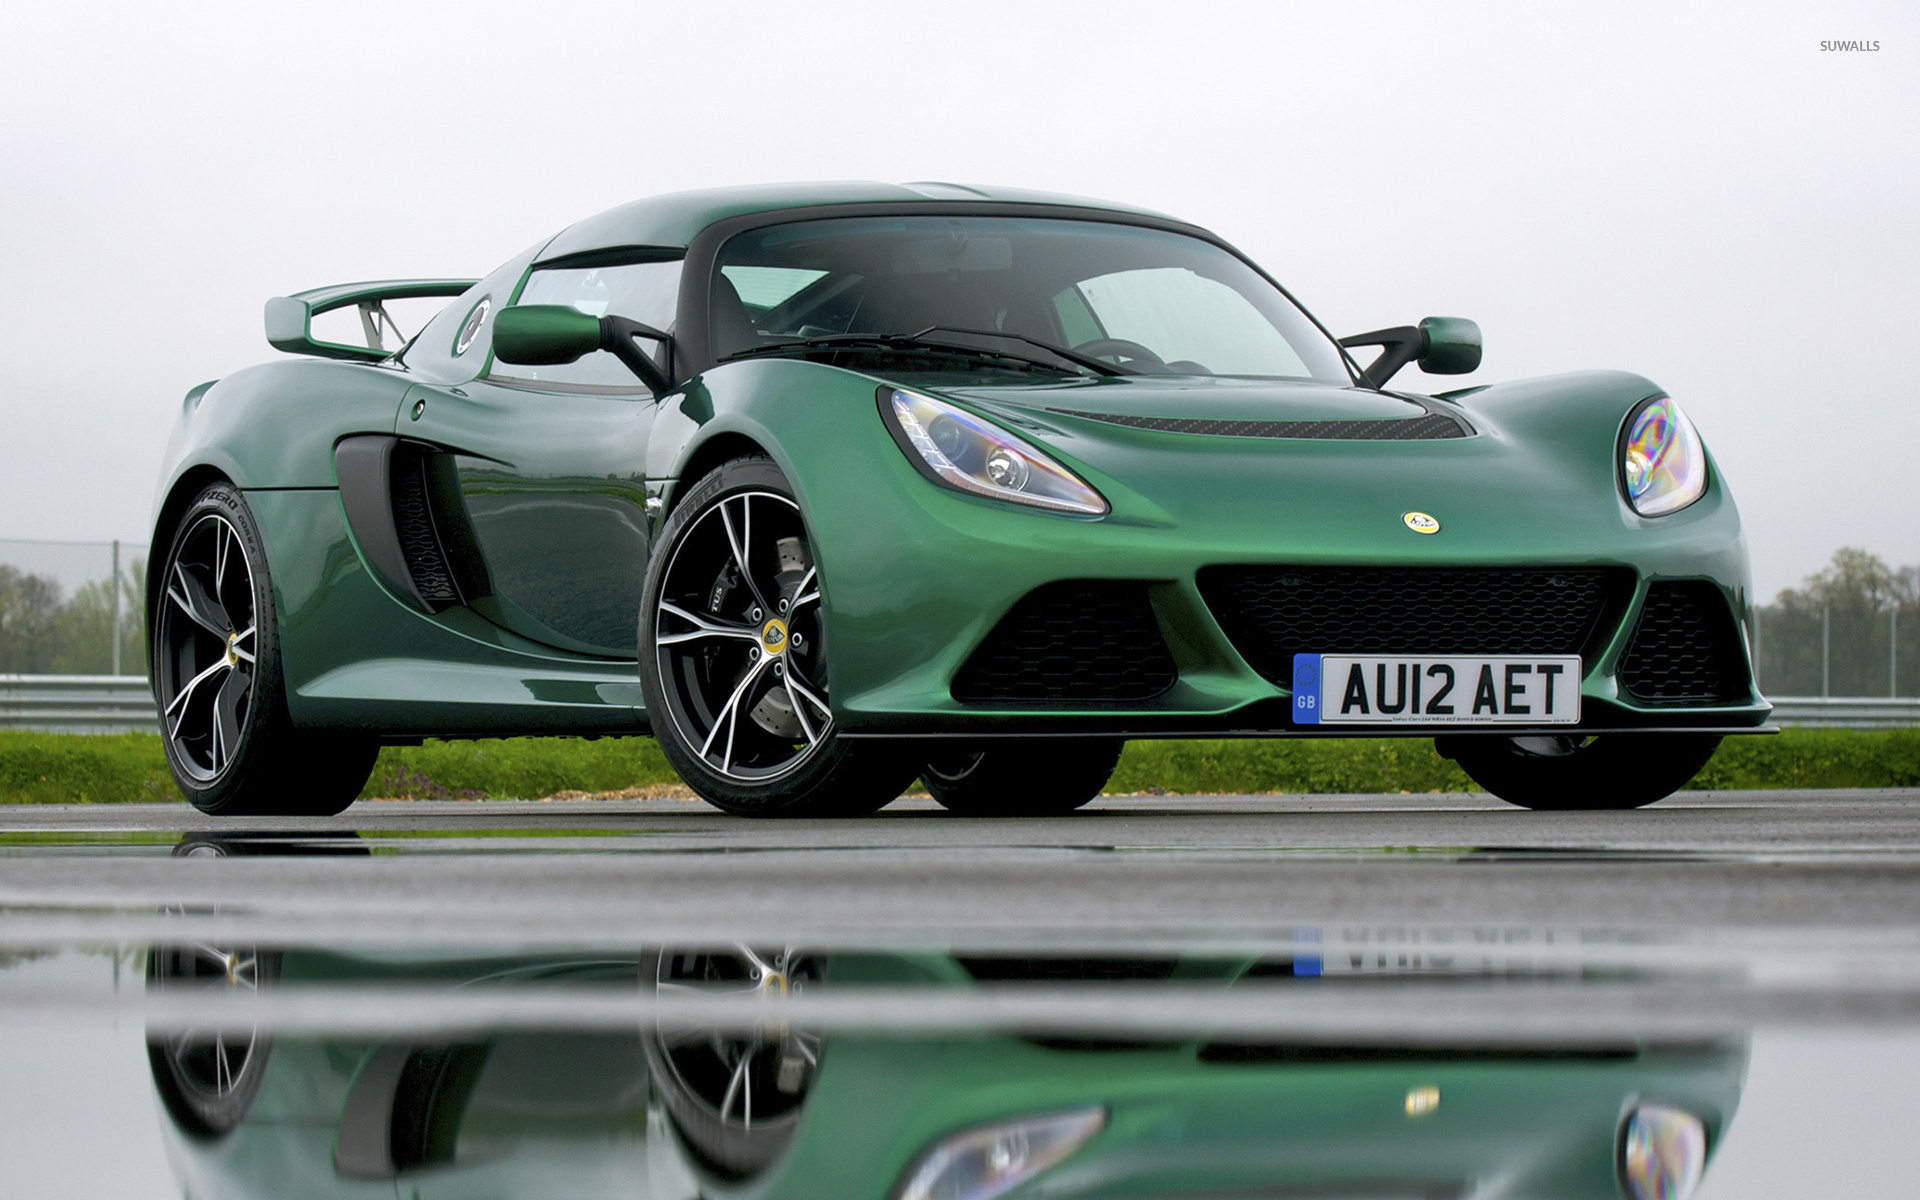 Green Lotus Exige S On The Road Wallpaper 1920x1200 Jpg